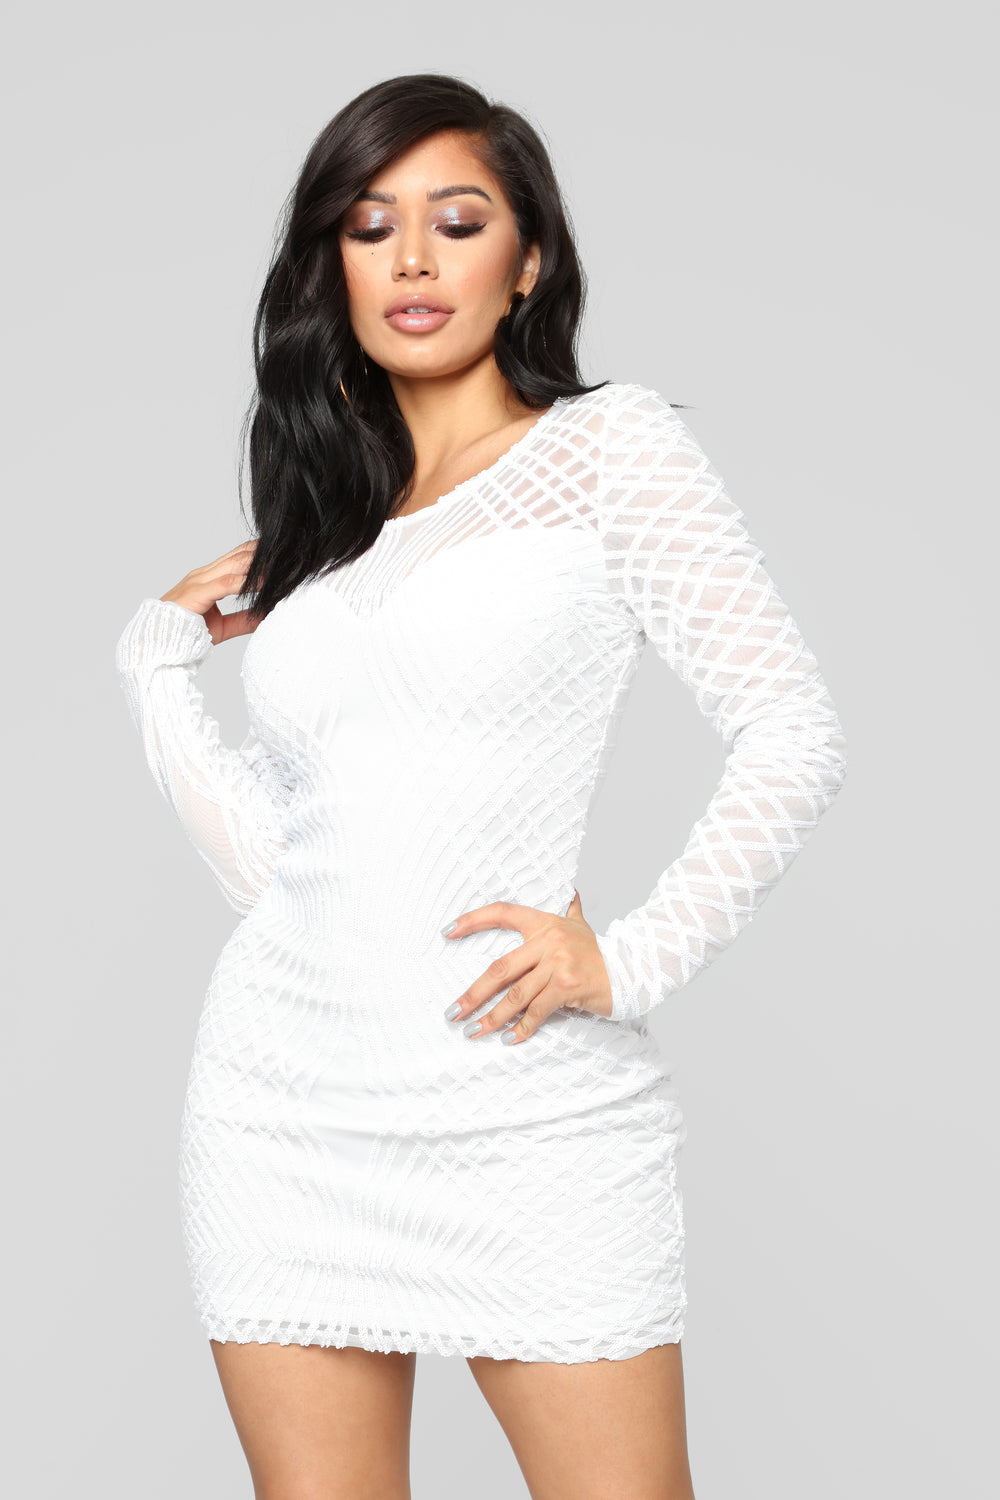 Upgraded You Mini Dress - White